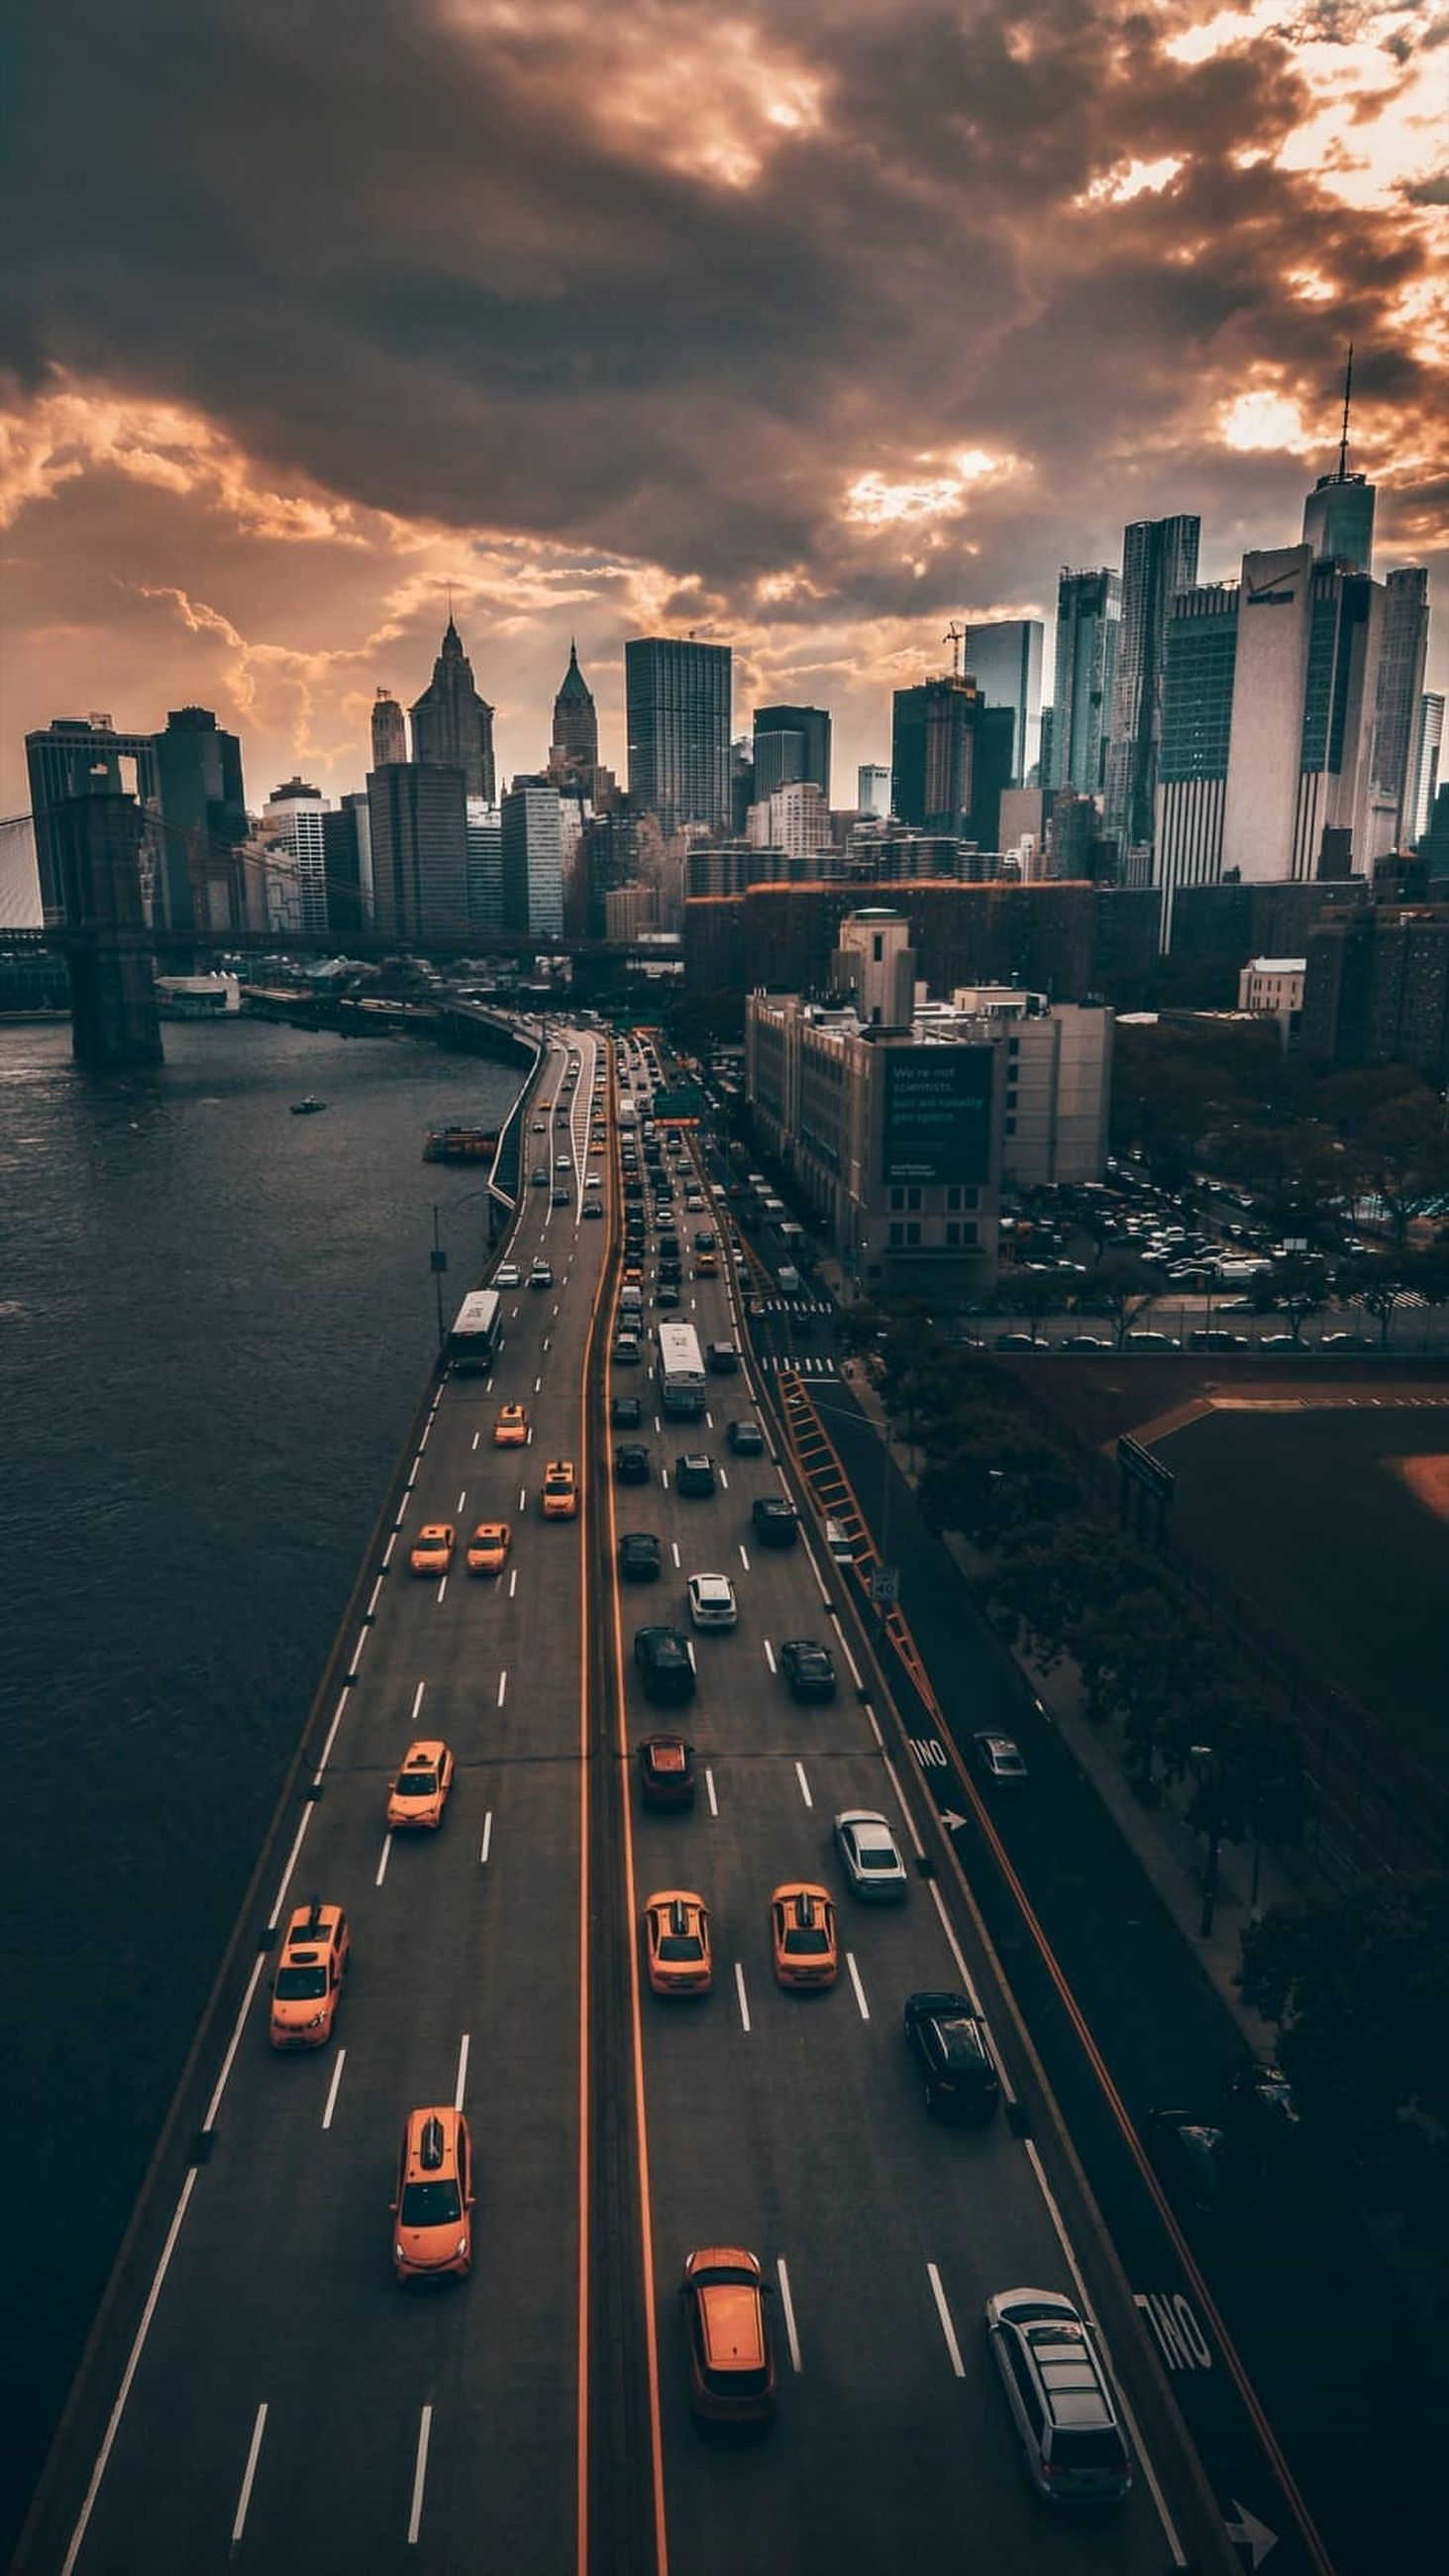 transportation, city, road, car, architecture, sky, motor vehicle, built structure, building exterior, cloud - sky, mode of transportation, sunset, land vehicle, high angle view, symbol, traffic, marking, street, sign, cityscape, no people, office building exterior, outdoors, skyscraper, city street, multiple lane highway, modern